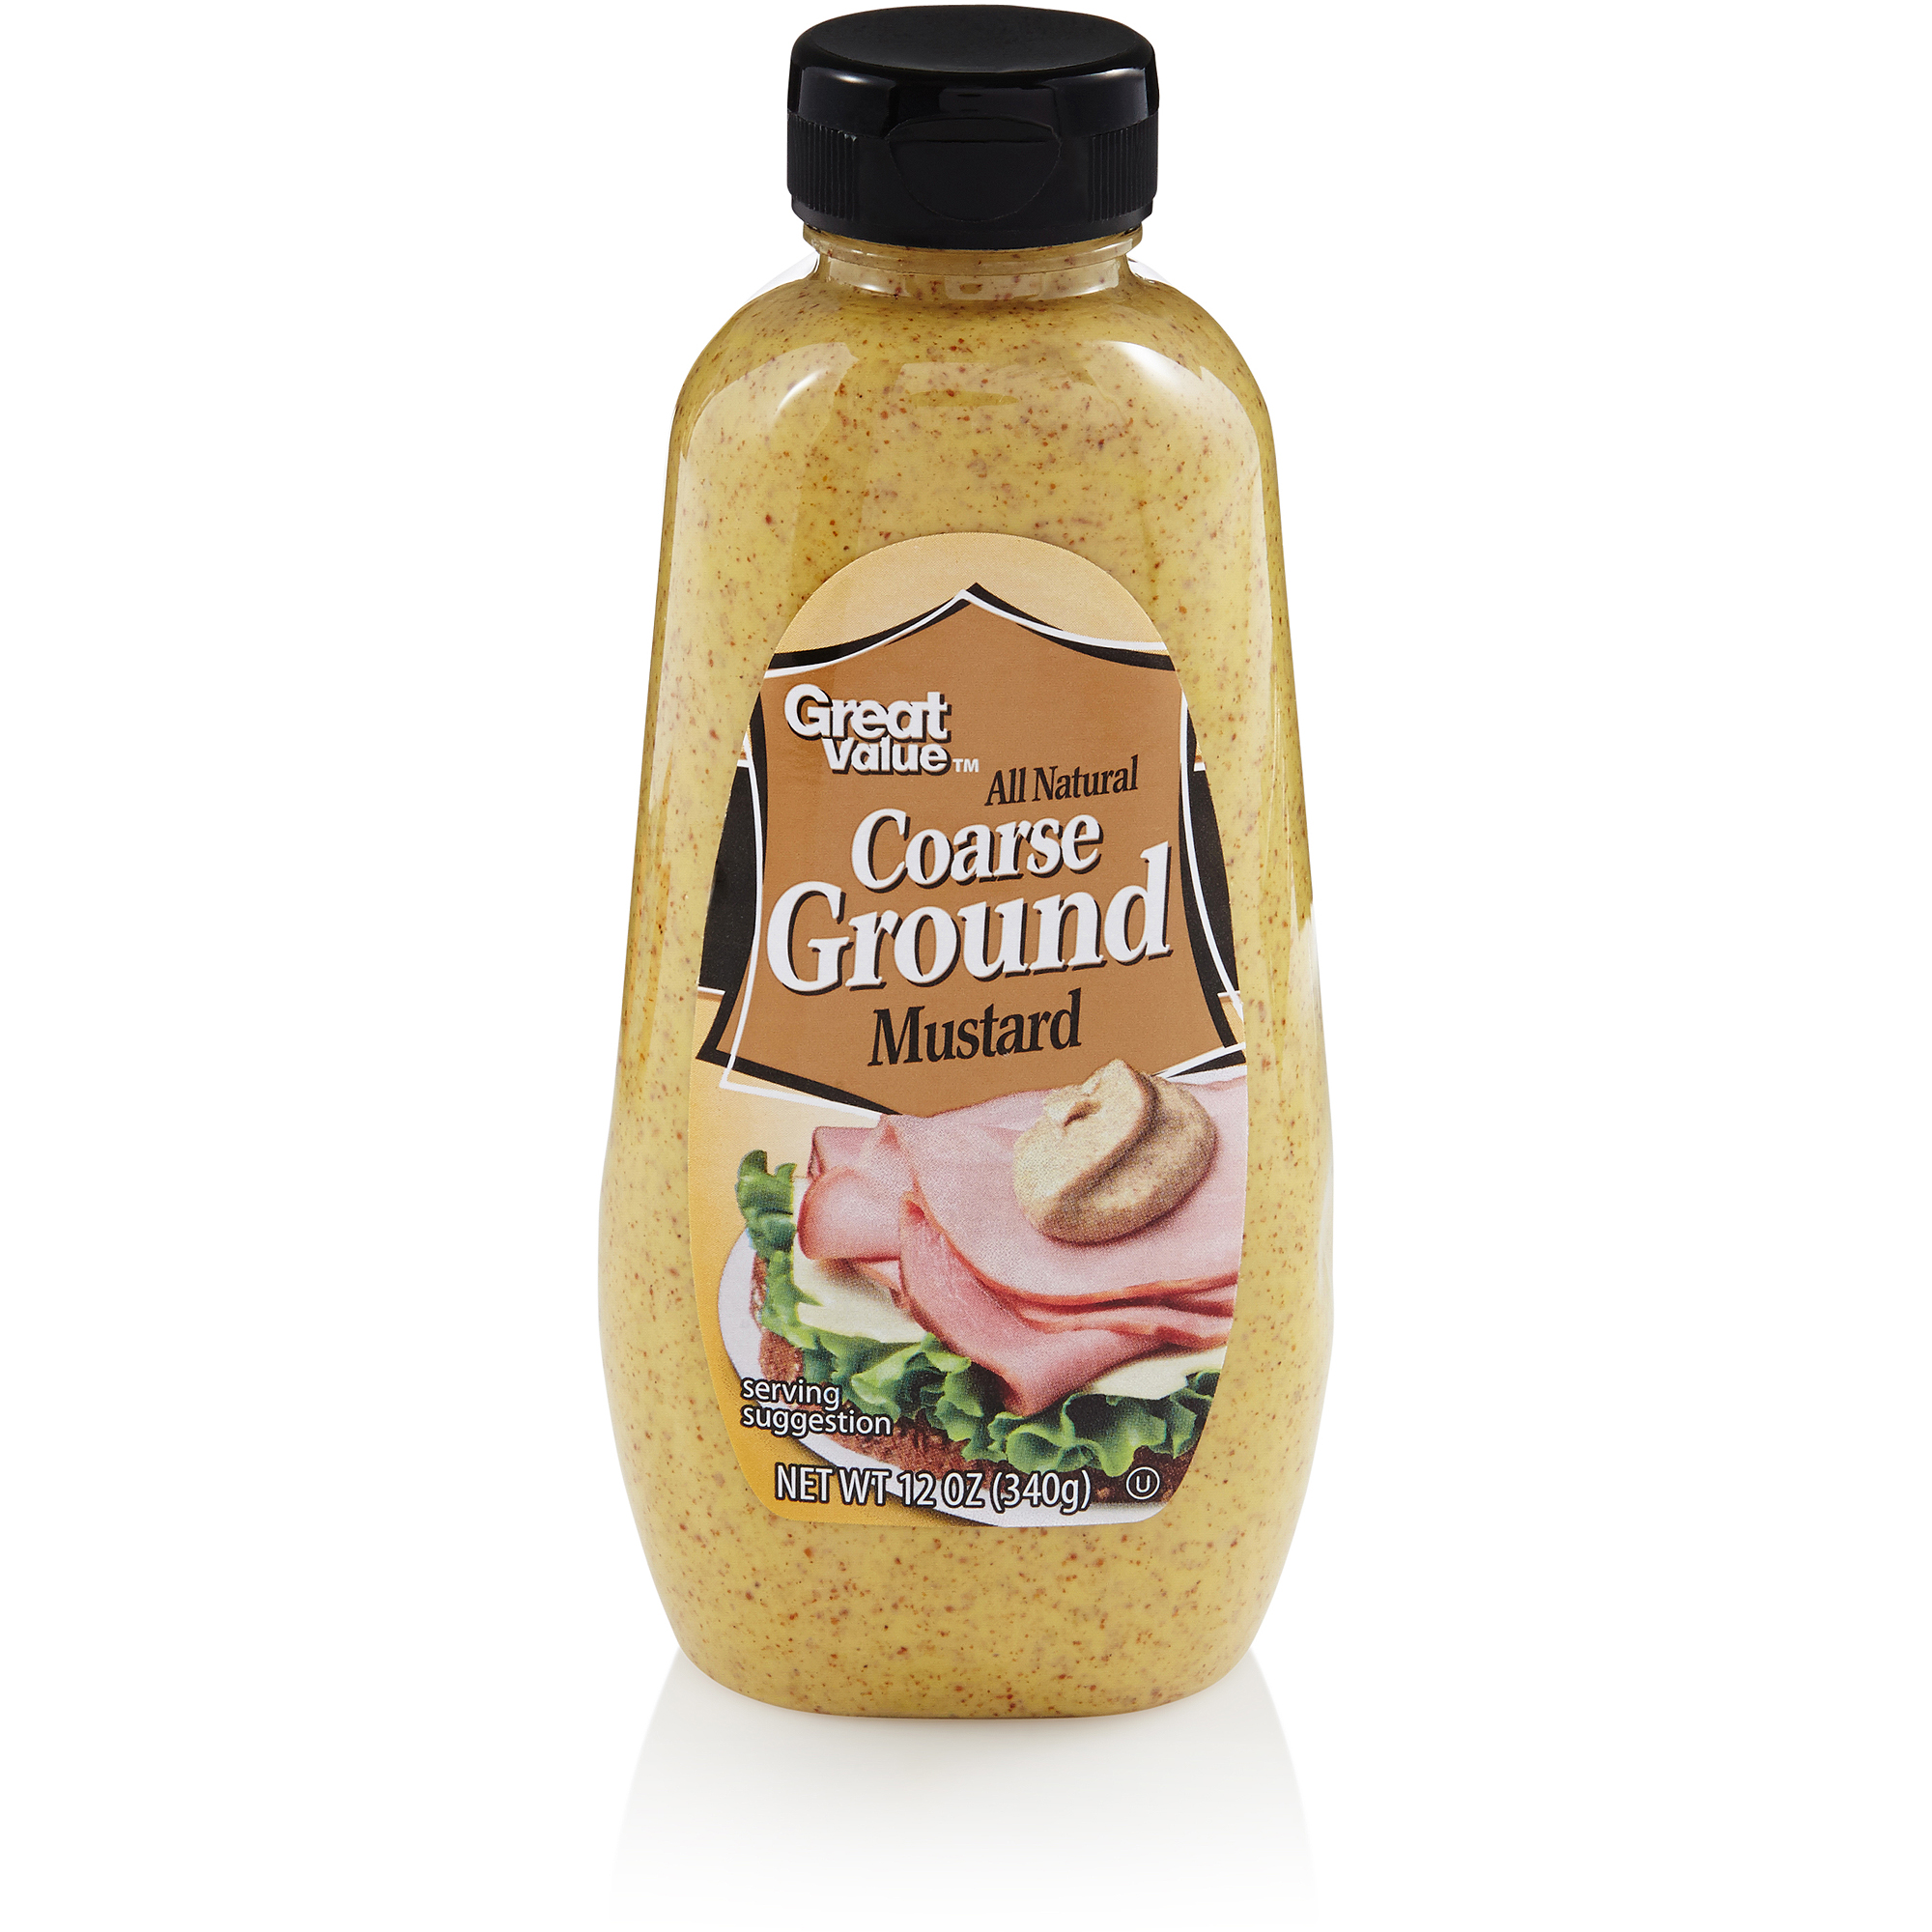 Great Value All Natural Coarse Ground Mustard, 12 oz